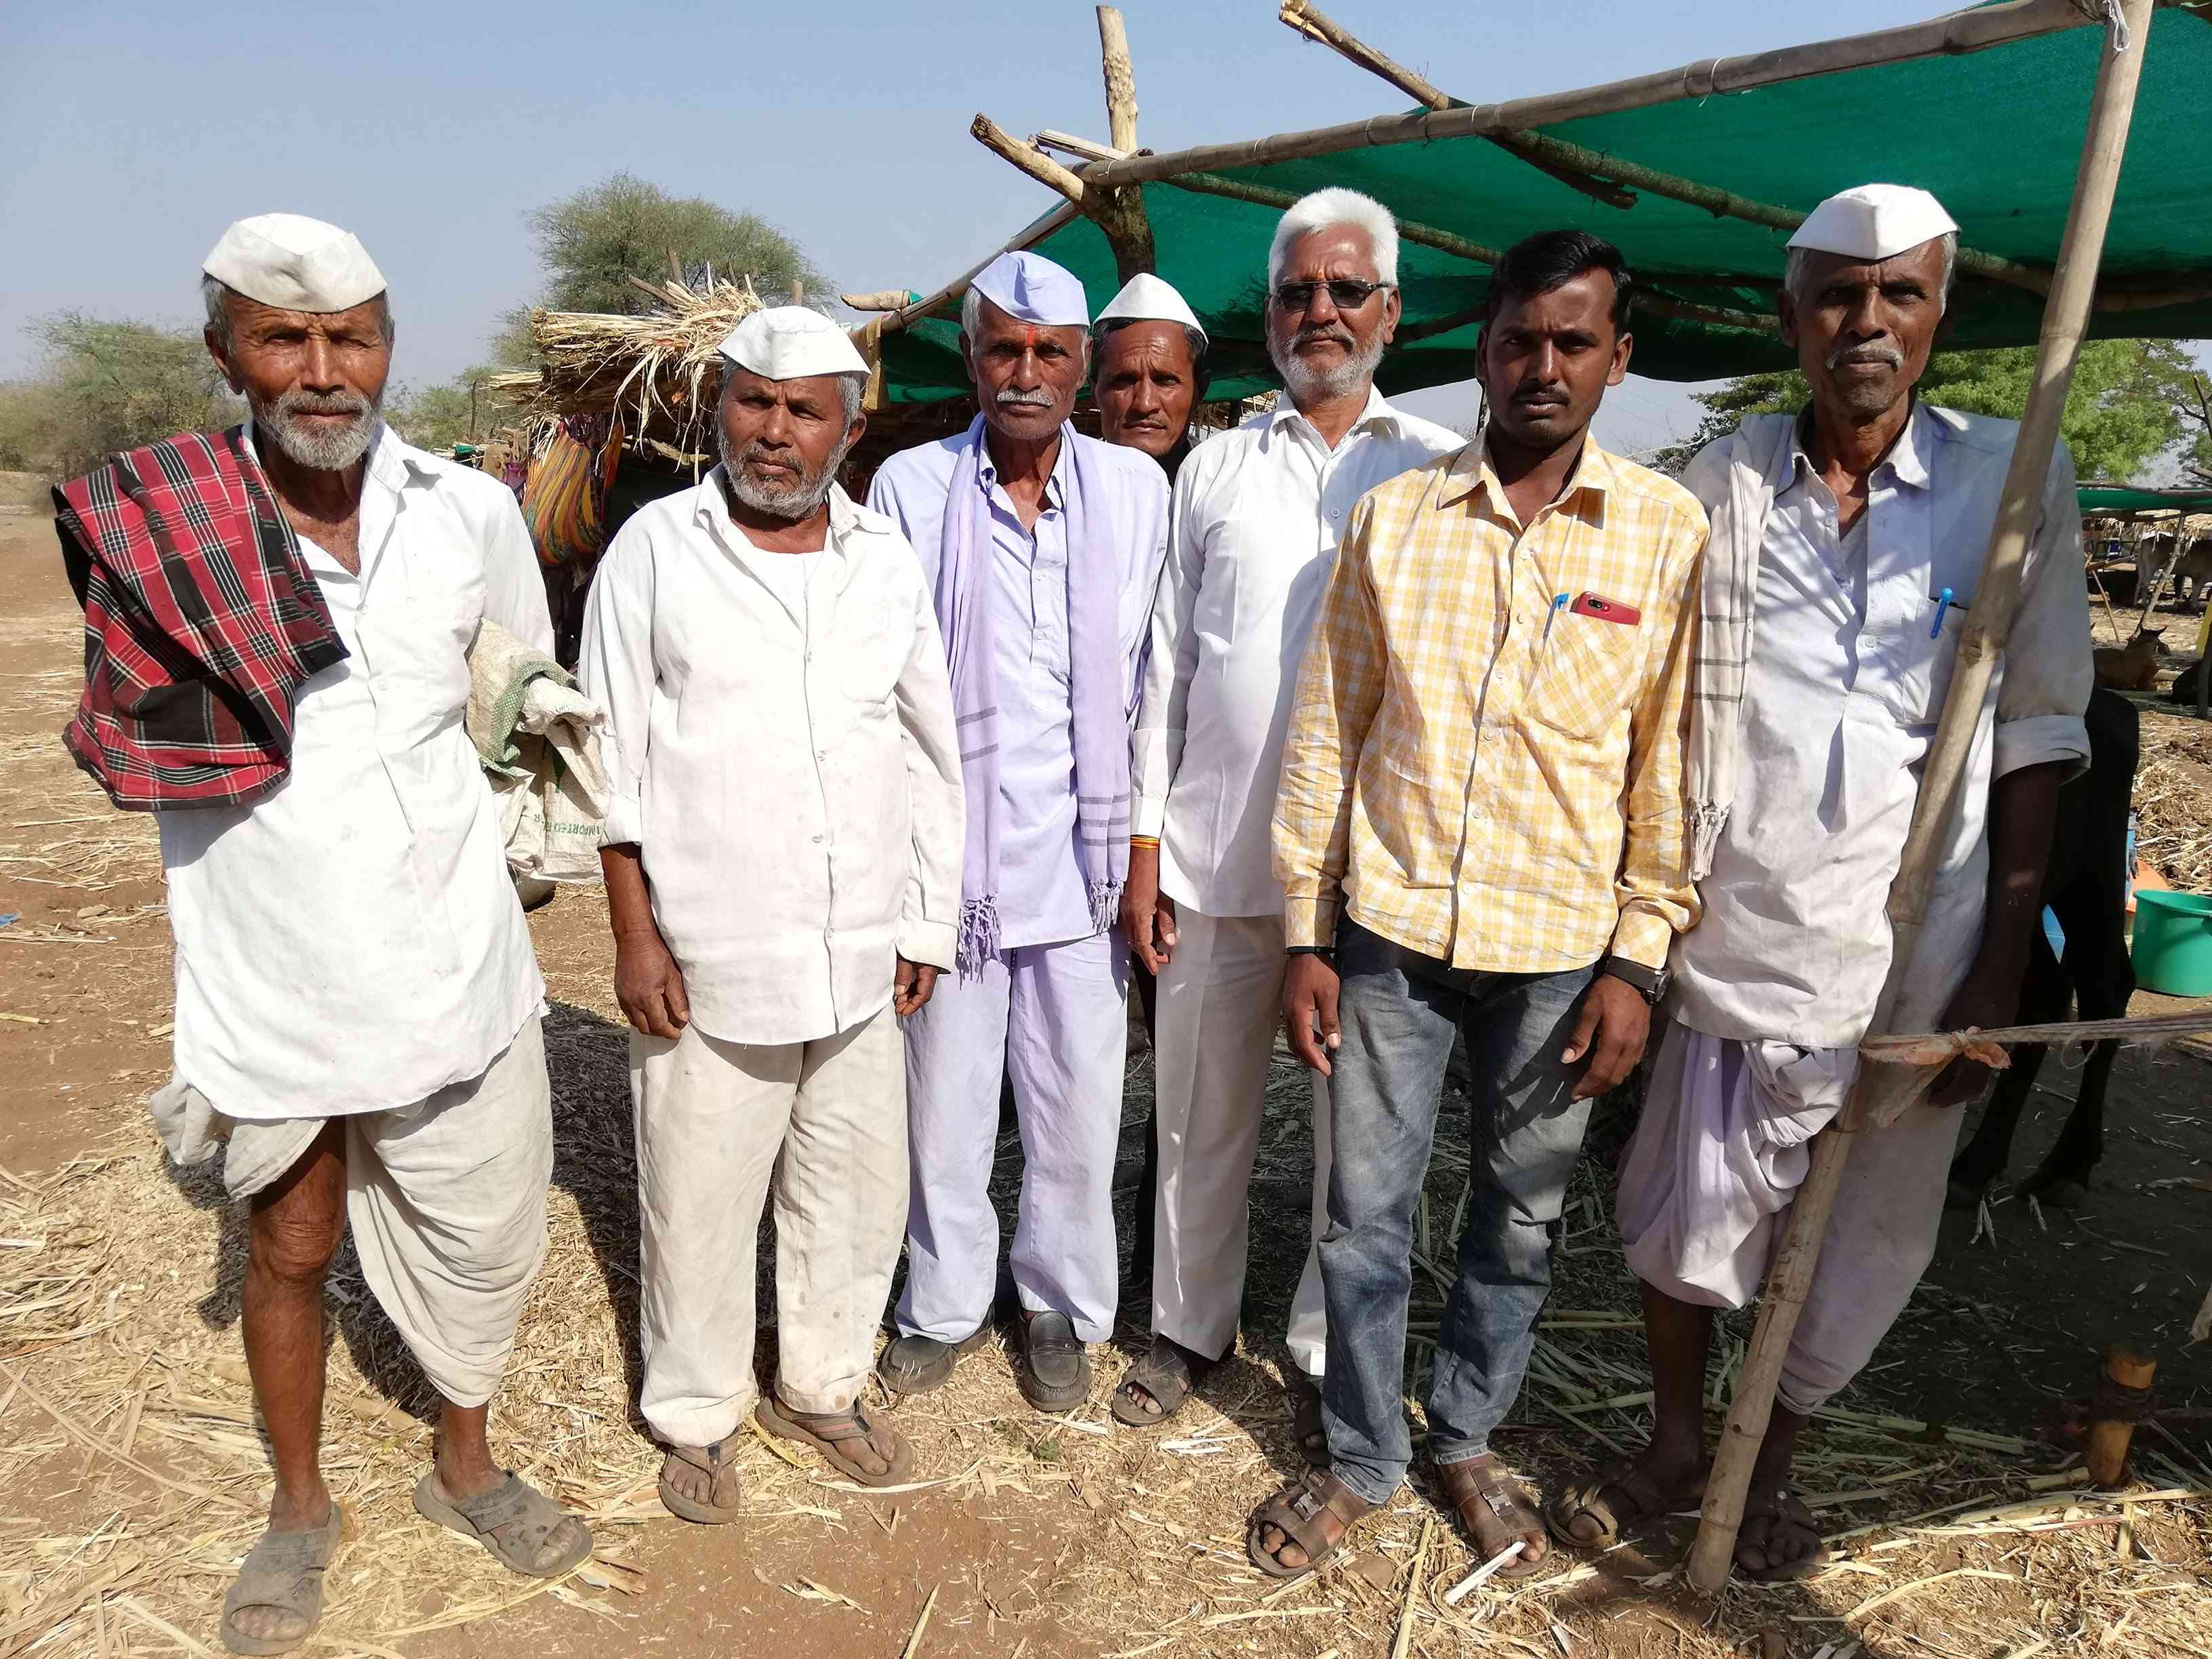 Kachrusaheb Rathod, right, and Hasrubhai Sanap, third from right, at the cattle camp in Limba Devi. Photo credit: Mridula Chari